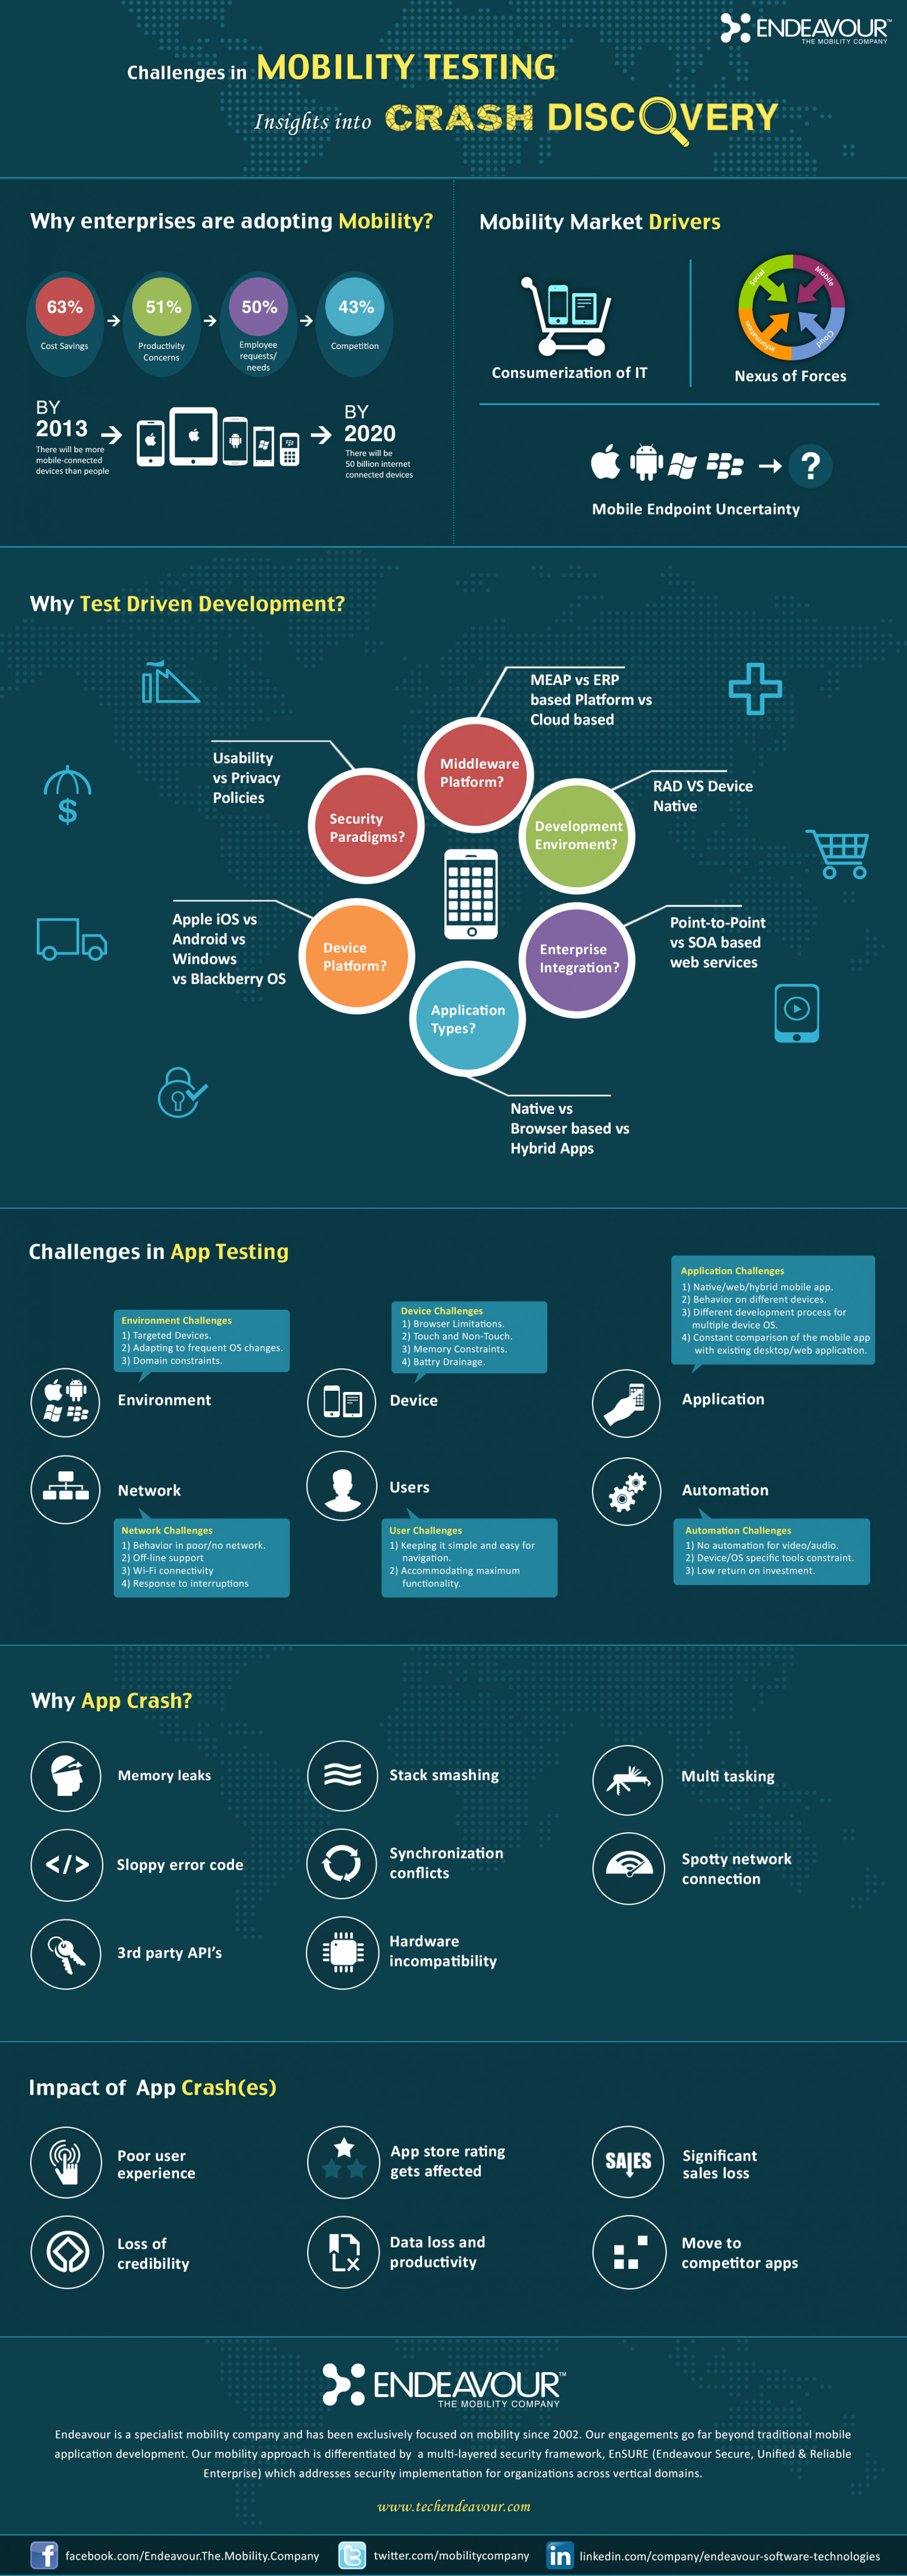 mobile application development and testing challenges Infographic